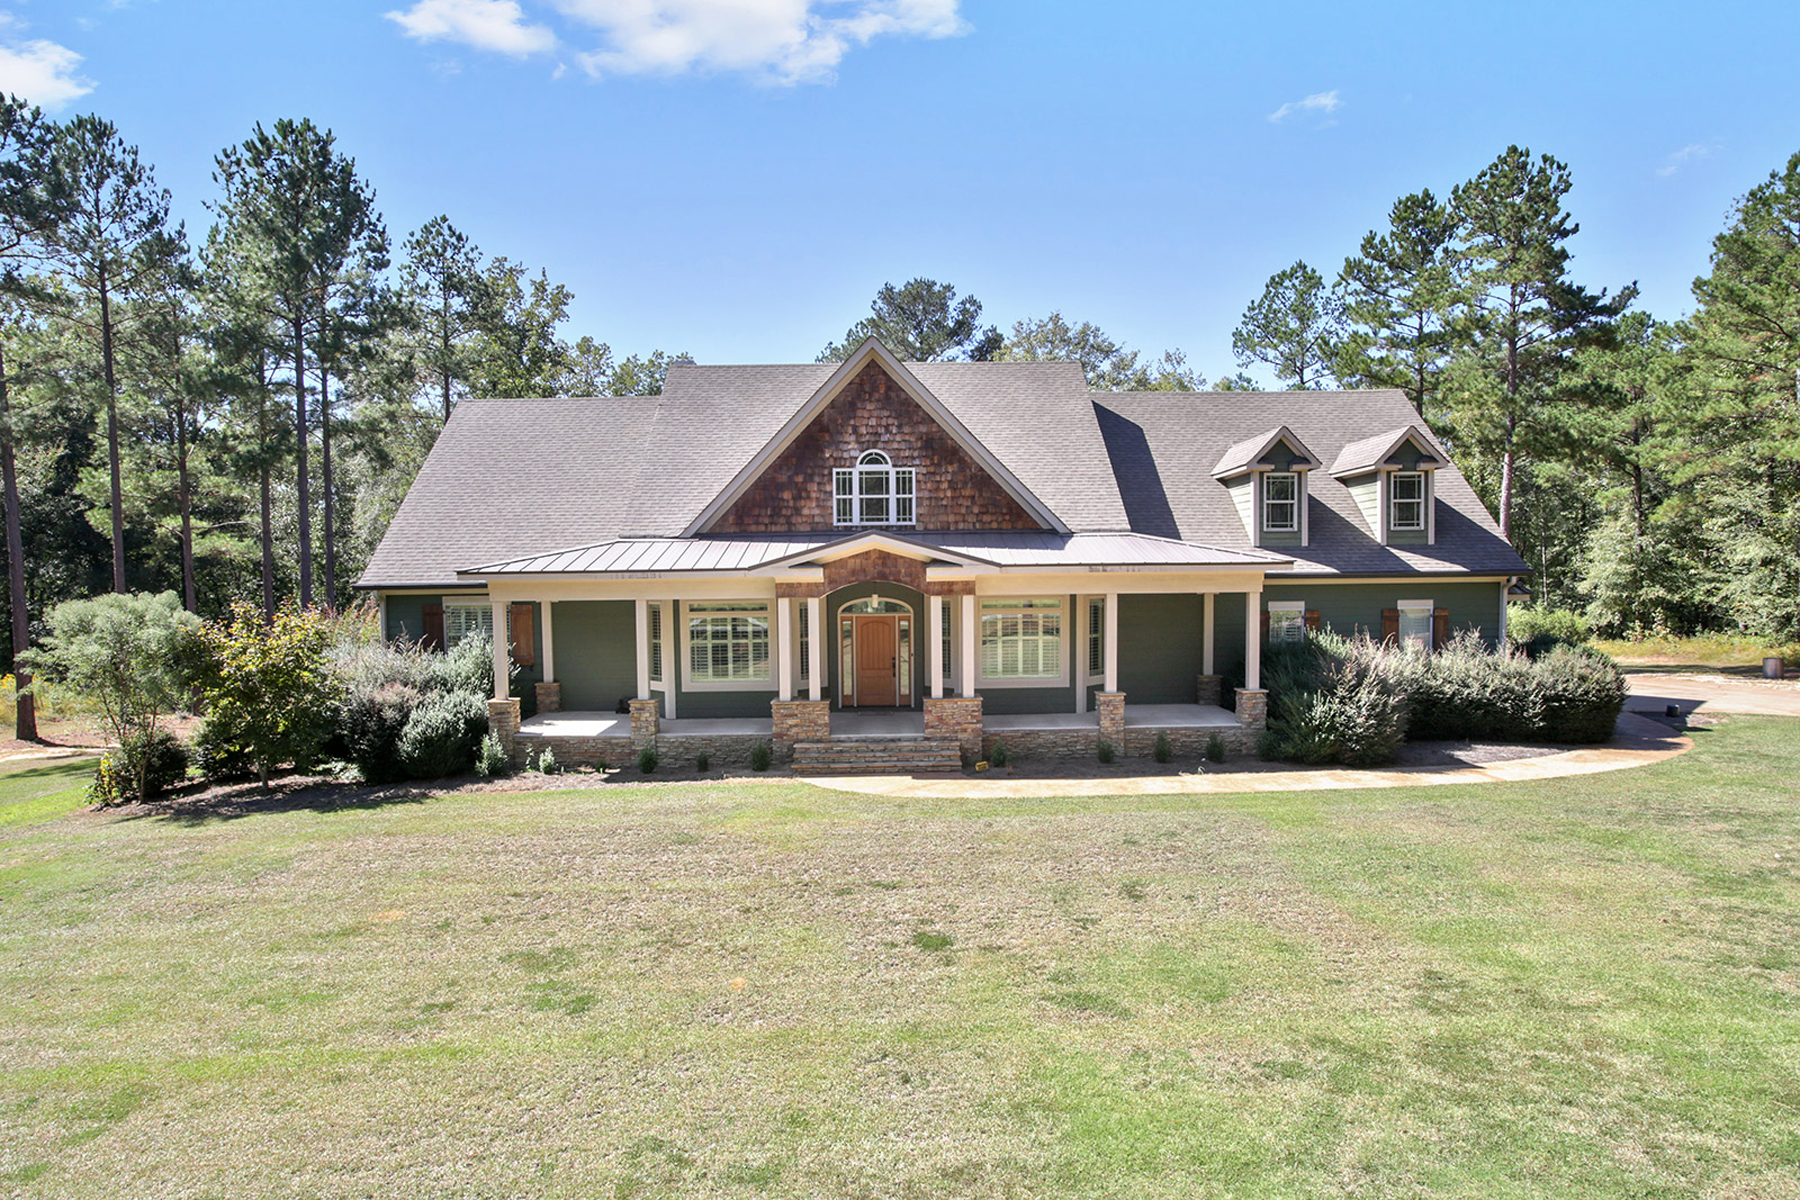 Single Family Home for Active at Find your perfect retreat in spacious custom home on Flint River! 125 Indian Trail Concord, Georgia 30206 United States